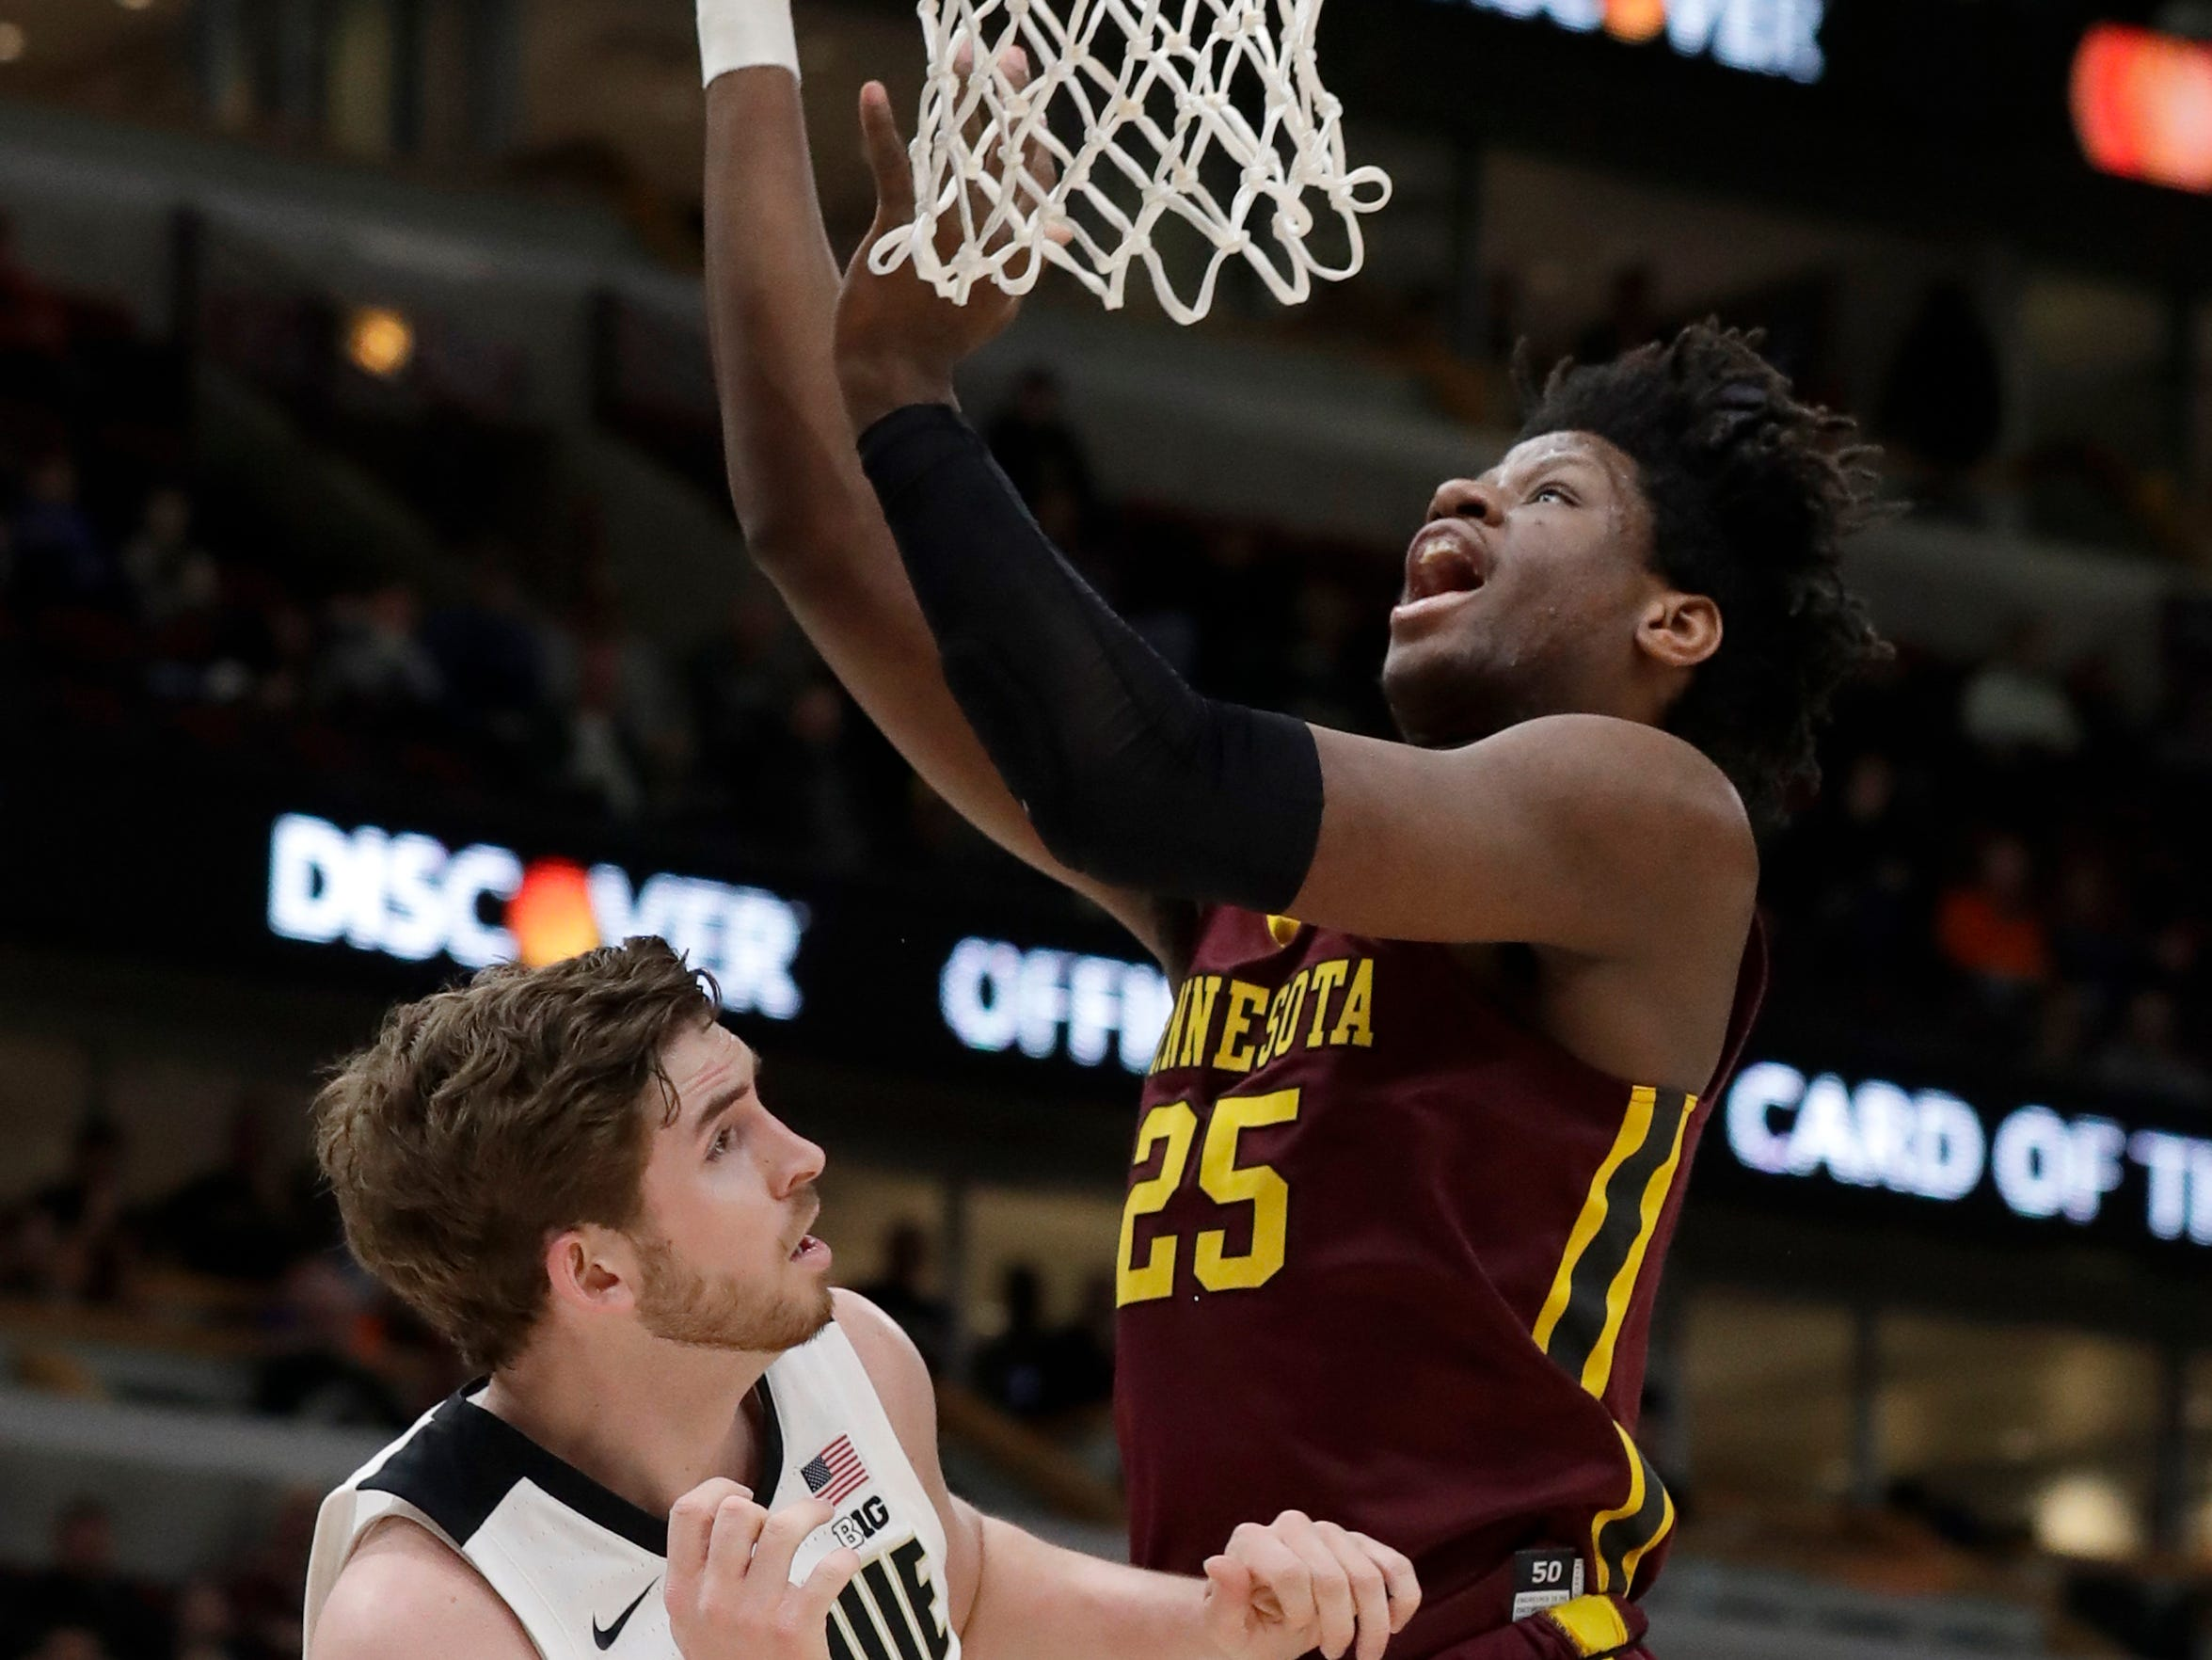 Minnesota's Daniel Oturu (25) goes up for a shot against Purdue's Ryan Cline (14) during the first half of an NCAA college basketball game in the quarterfinals of the Big Ten Conference tournament, Friday, March 15, 2019, in Chicago. (AP Photo/Nam Y. Huh)